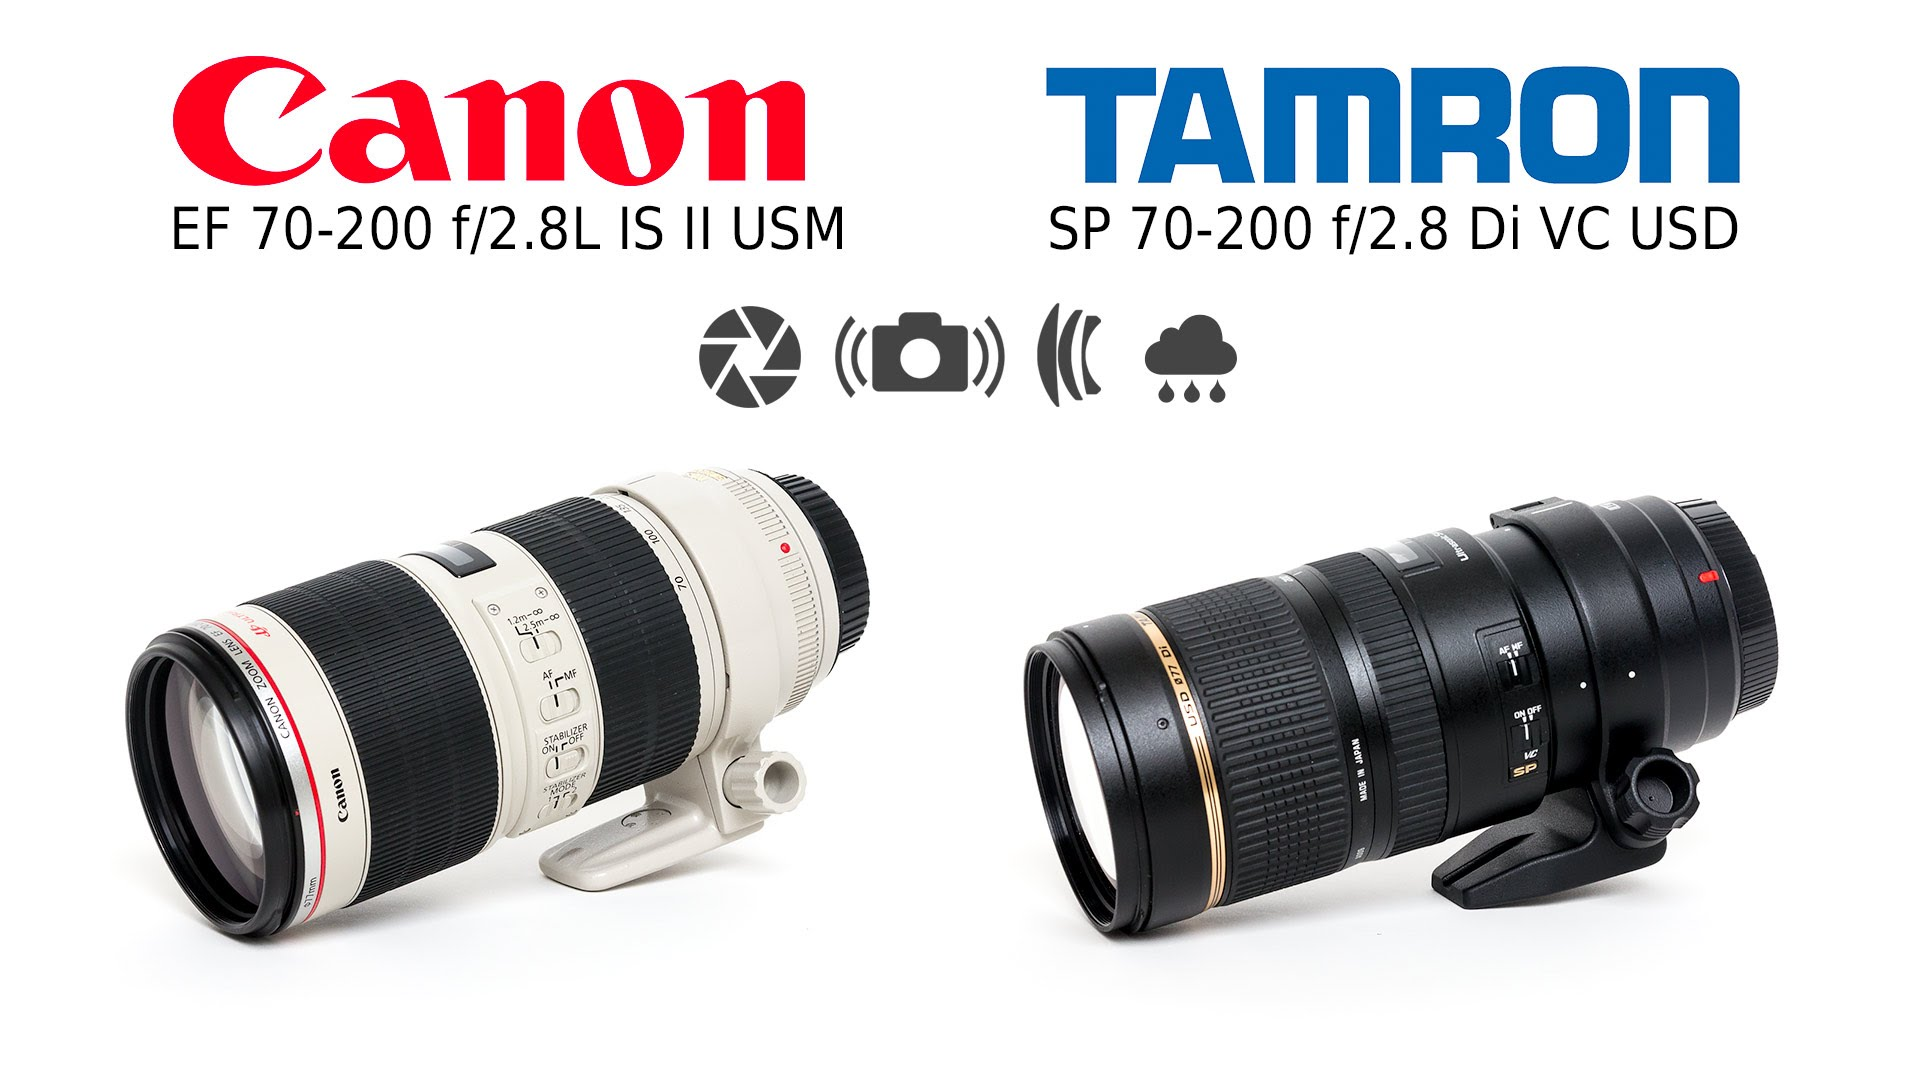 Lens Review: Tamron 70-200 f/2.8 VC USD vs. Canon EF 70-200mm f/2.8L IS II USM